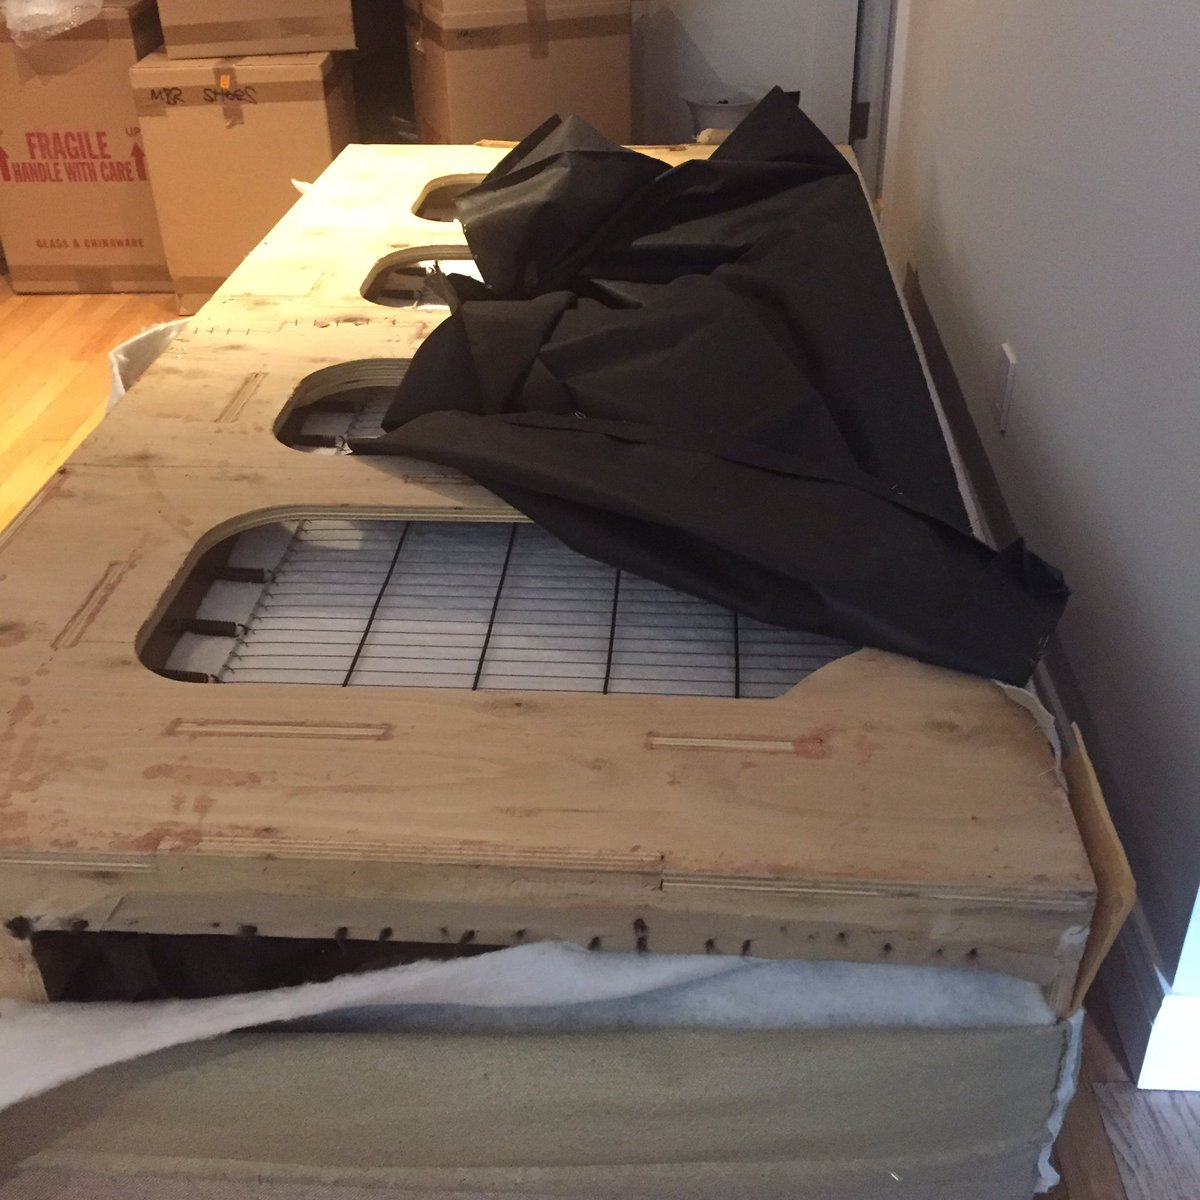 Jennifer Johnson Blalock On Twitter Dr Sofa Ripped Apart My Couch To Make It Fit In The Pre War Elevator And Is Now Putting Back Together Oh Nyc